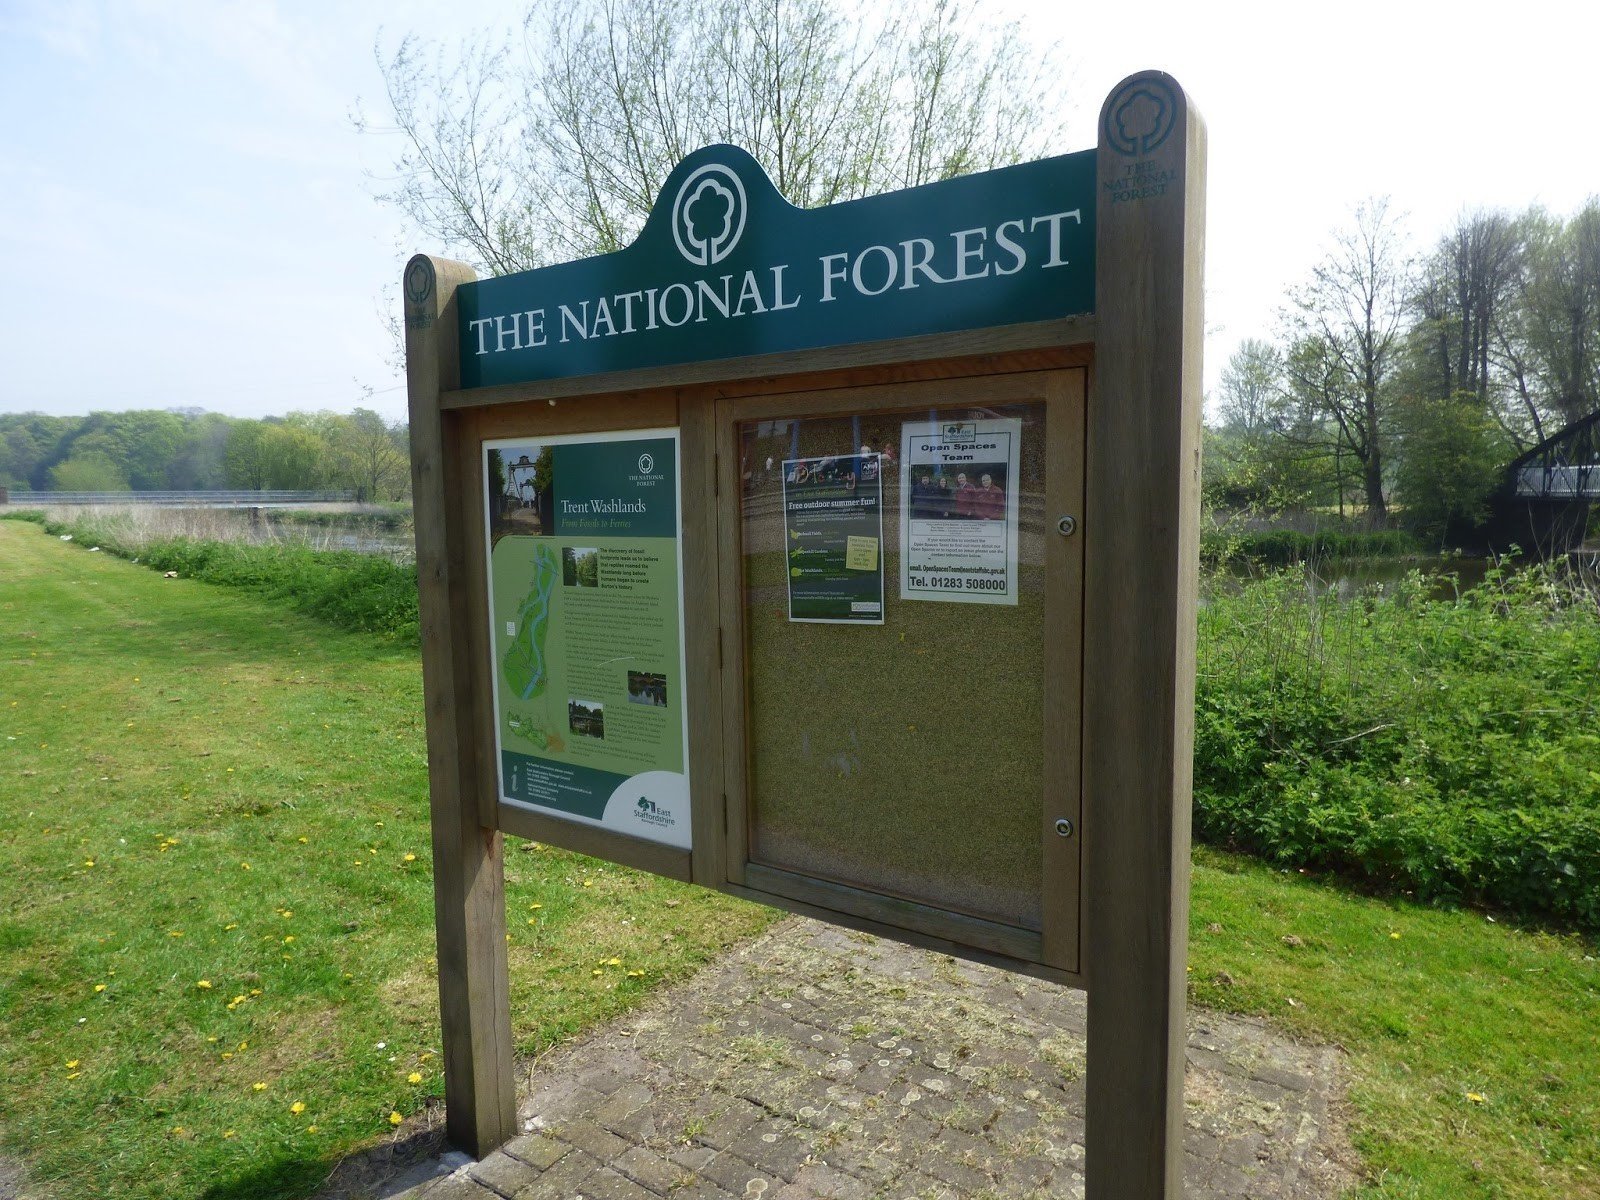 In Britain, the 8.9 million trees planted as part of the National Forest initiative have transformed what was once an industrial landscape.